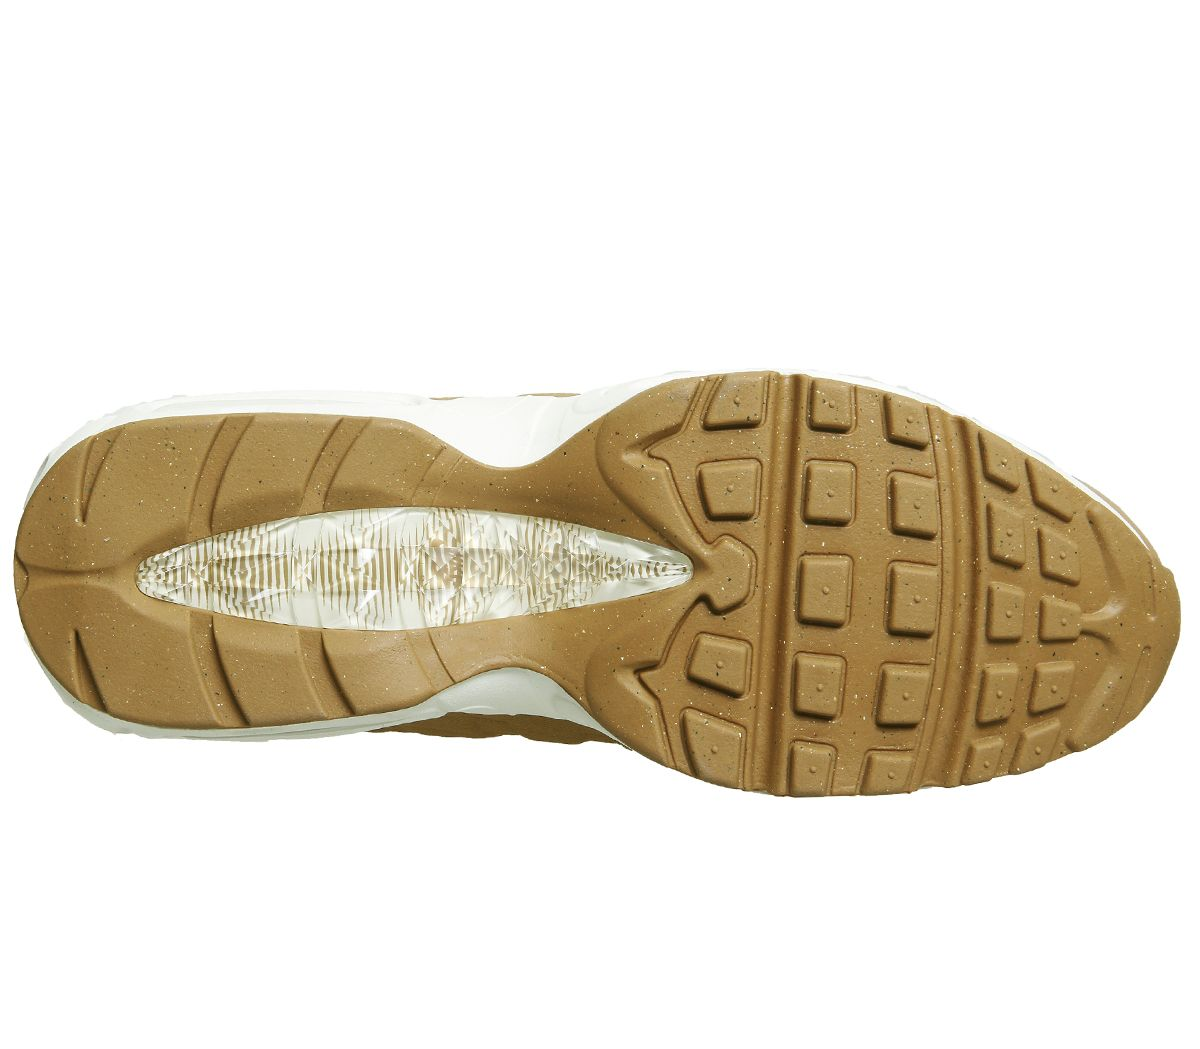 db06c784c9 Nike Air Max 95 Sneakerboots Flax White - His trainers